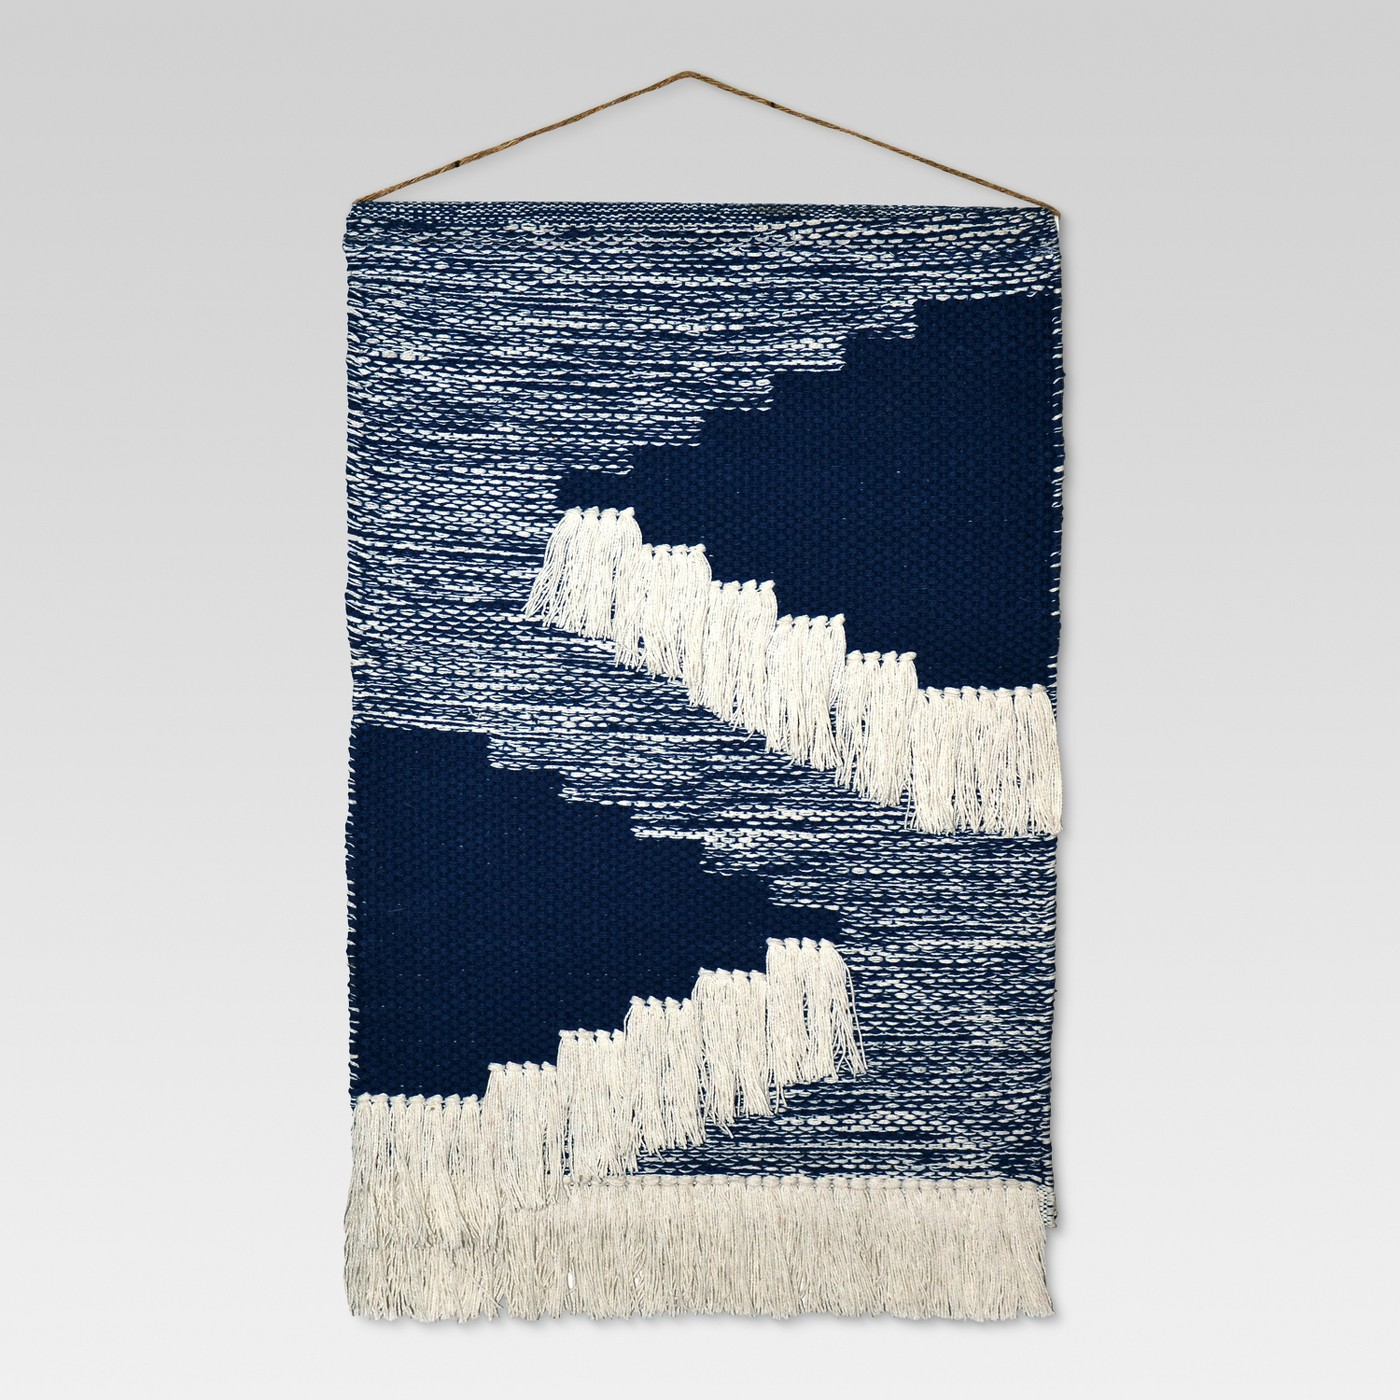 Woven wall hangings are neat, but they can be overdone